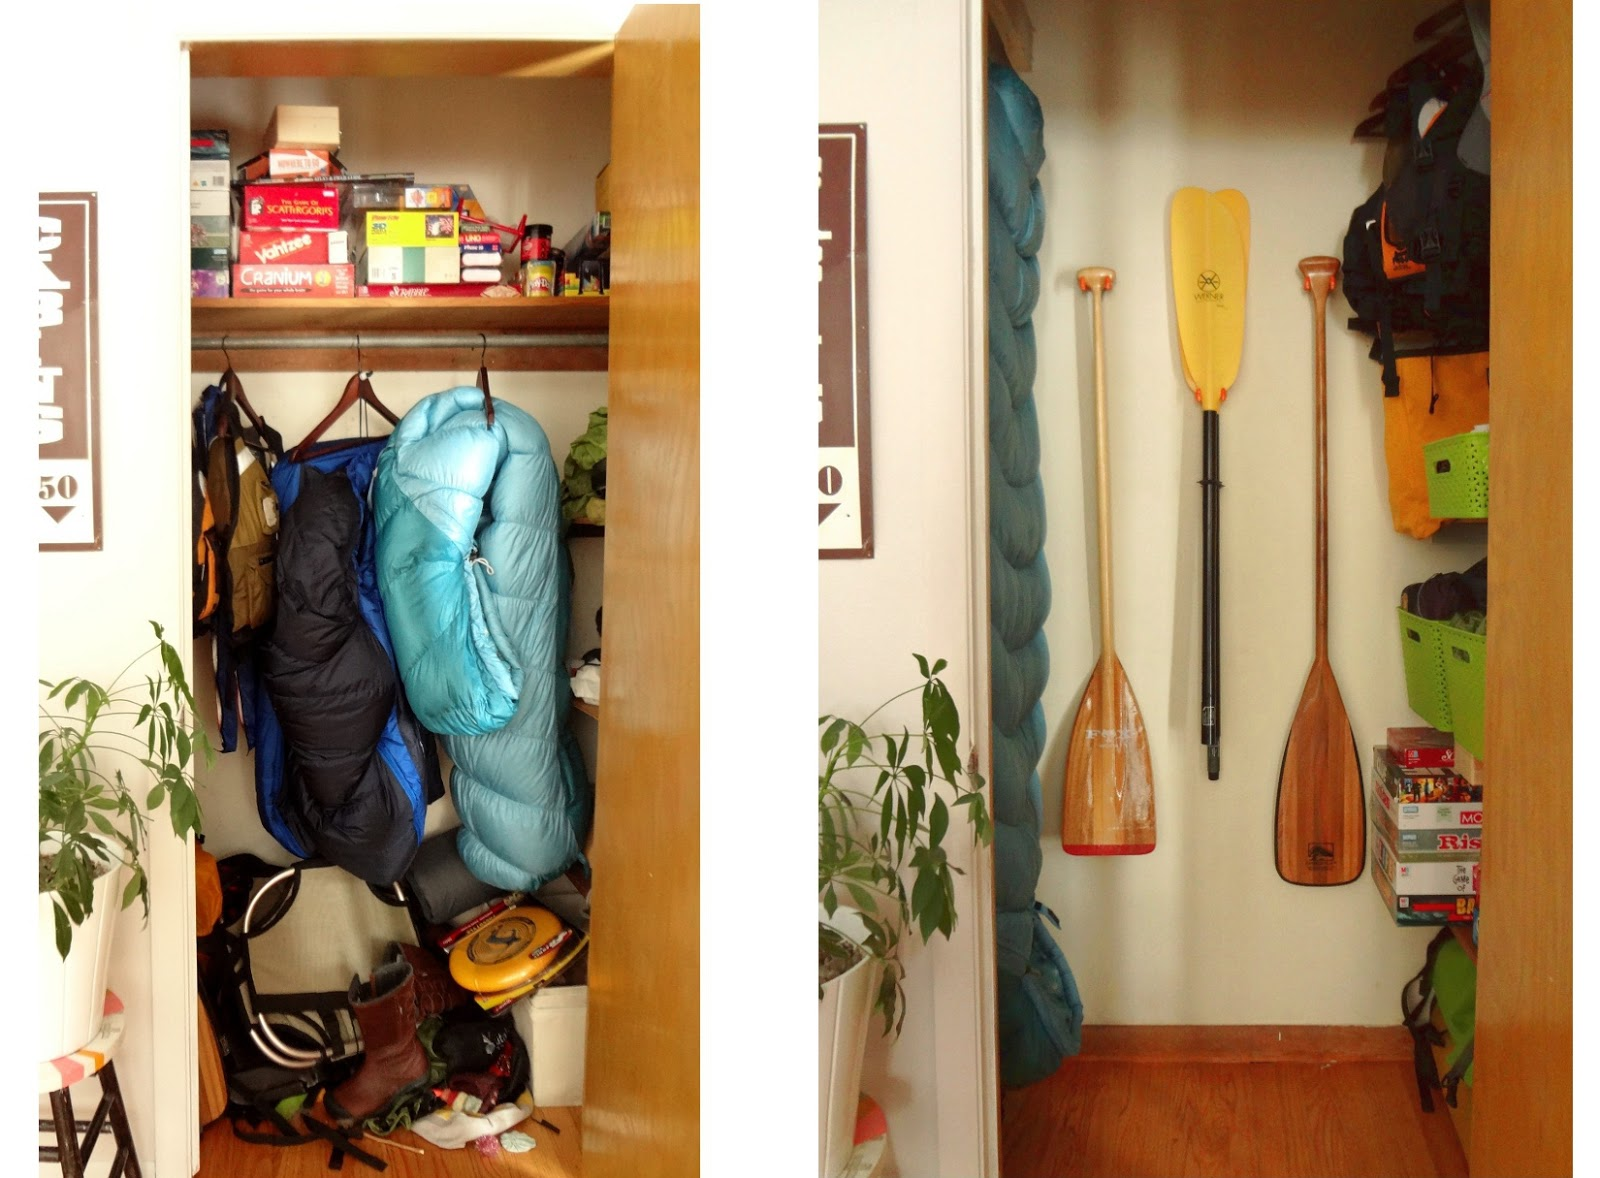 I Bought Some U Shaped Hangers At The Hardware Store So I Could Hang The  Paddles And I Was Pretty Excited To Find Them. I Thought I Would Have To  Stop At ...